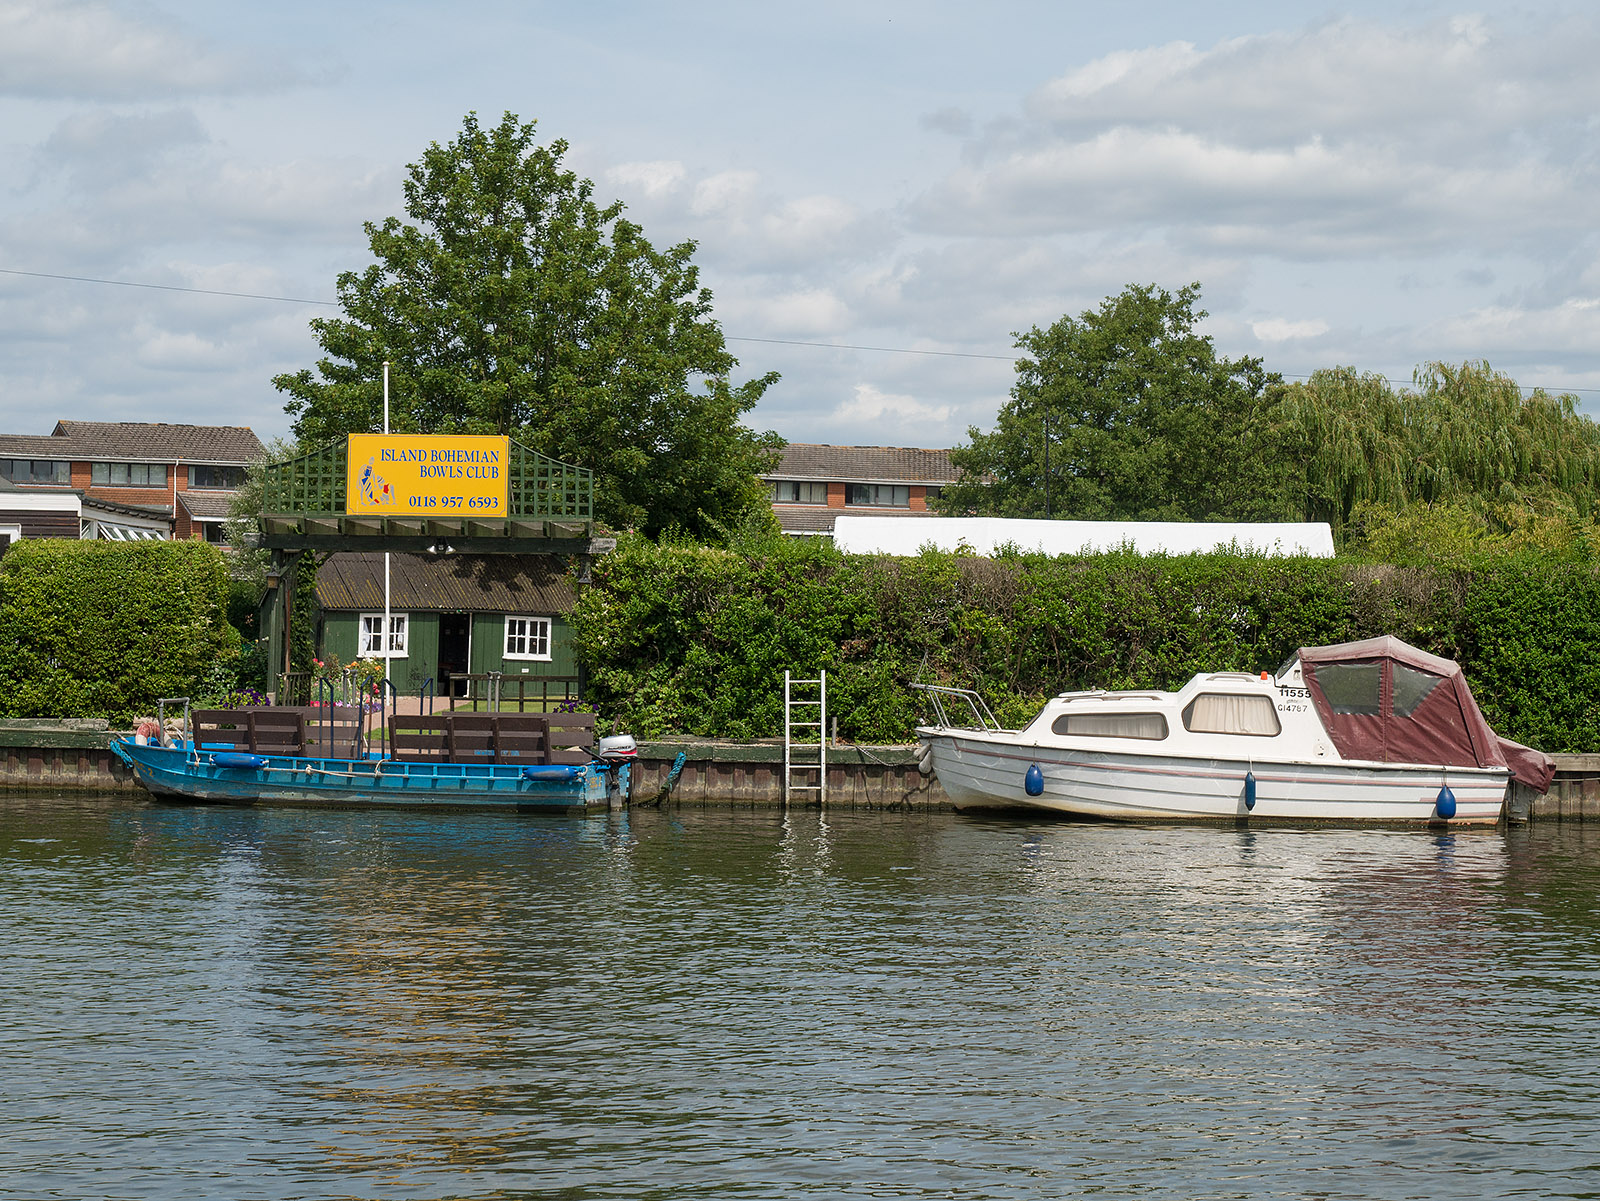 The only bowls club in the UK that requires a boat to access it